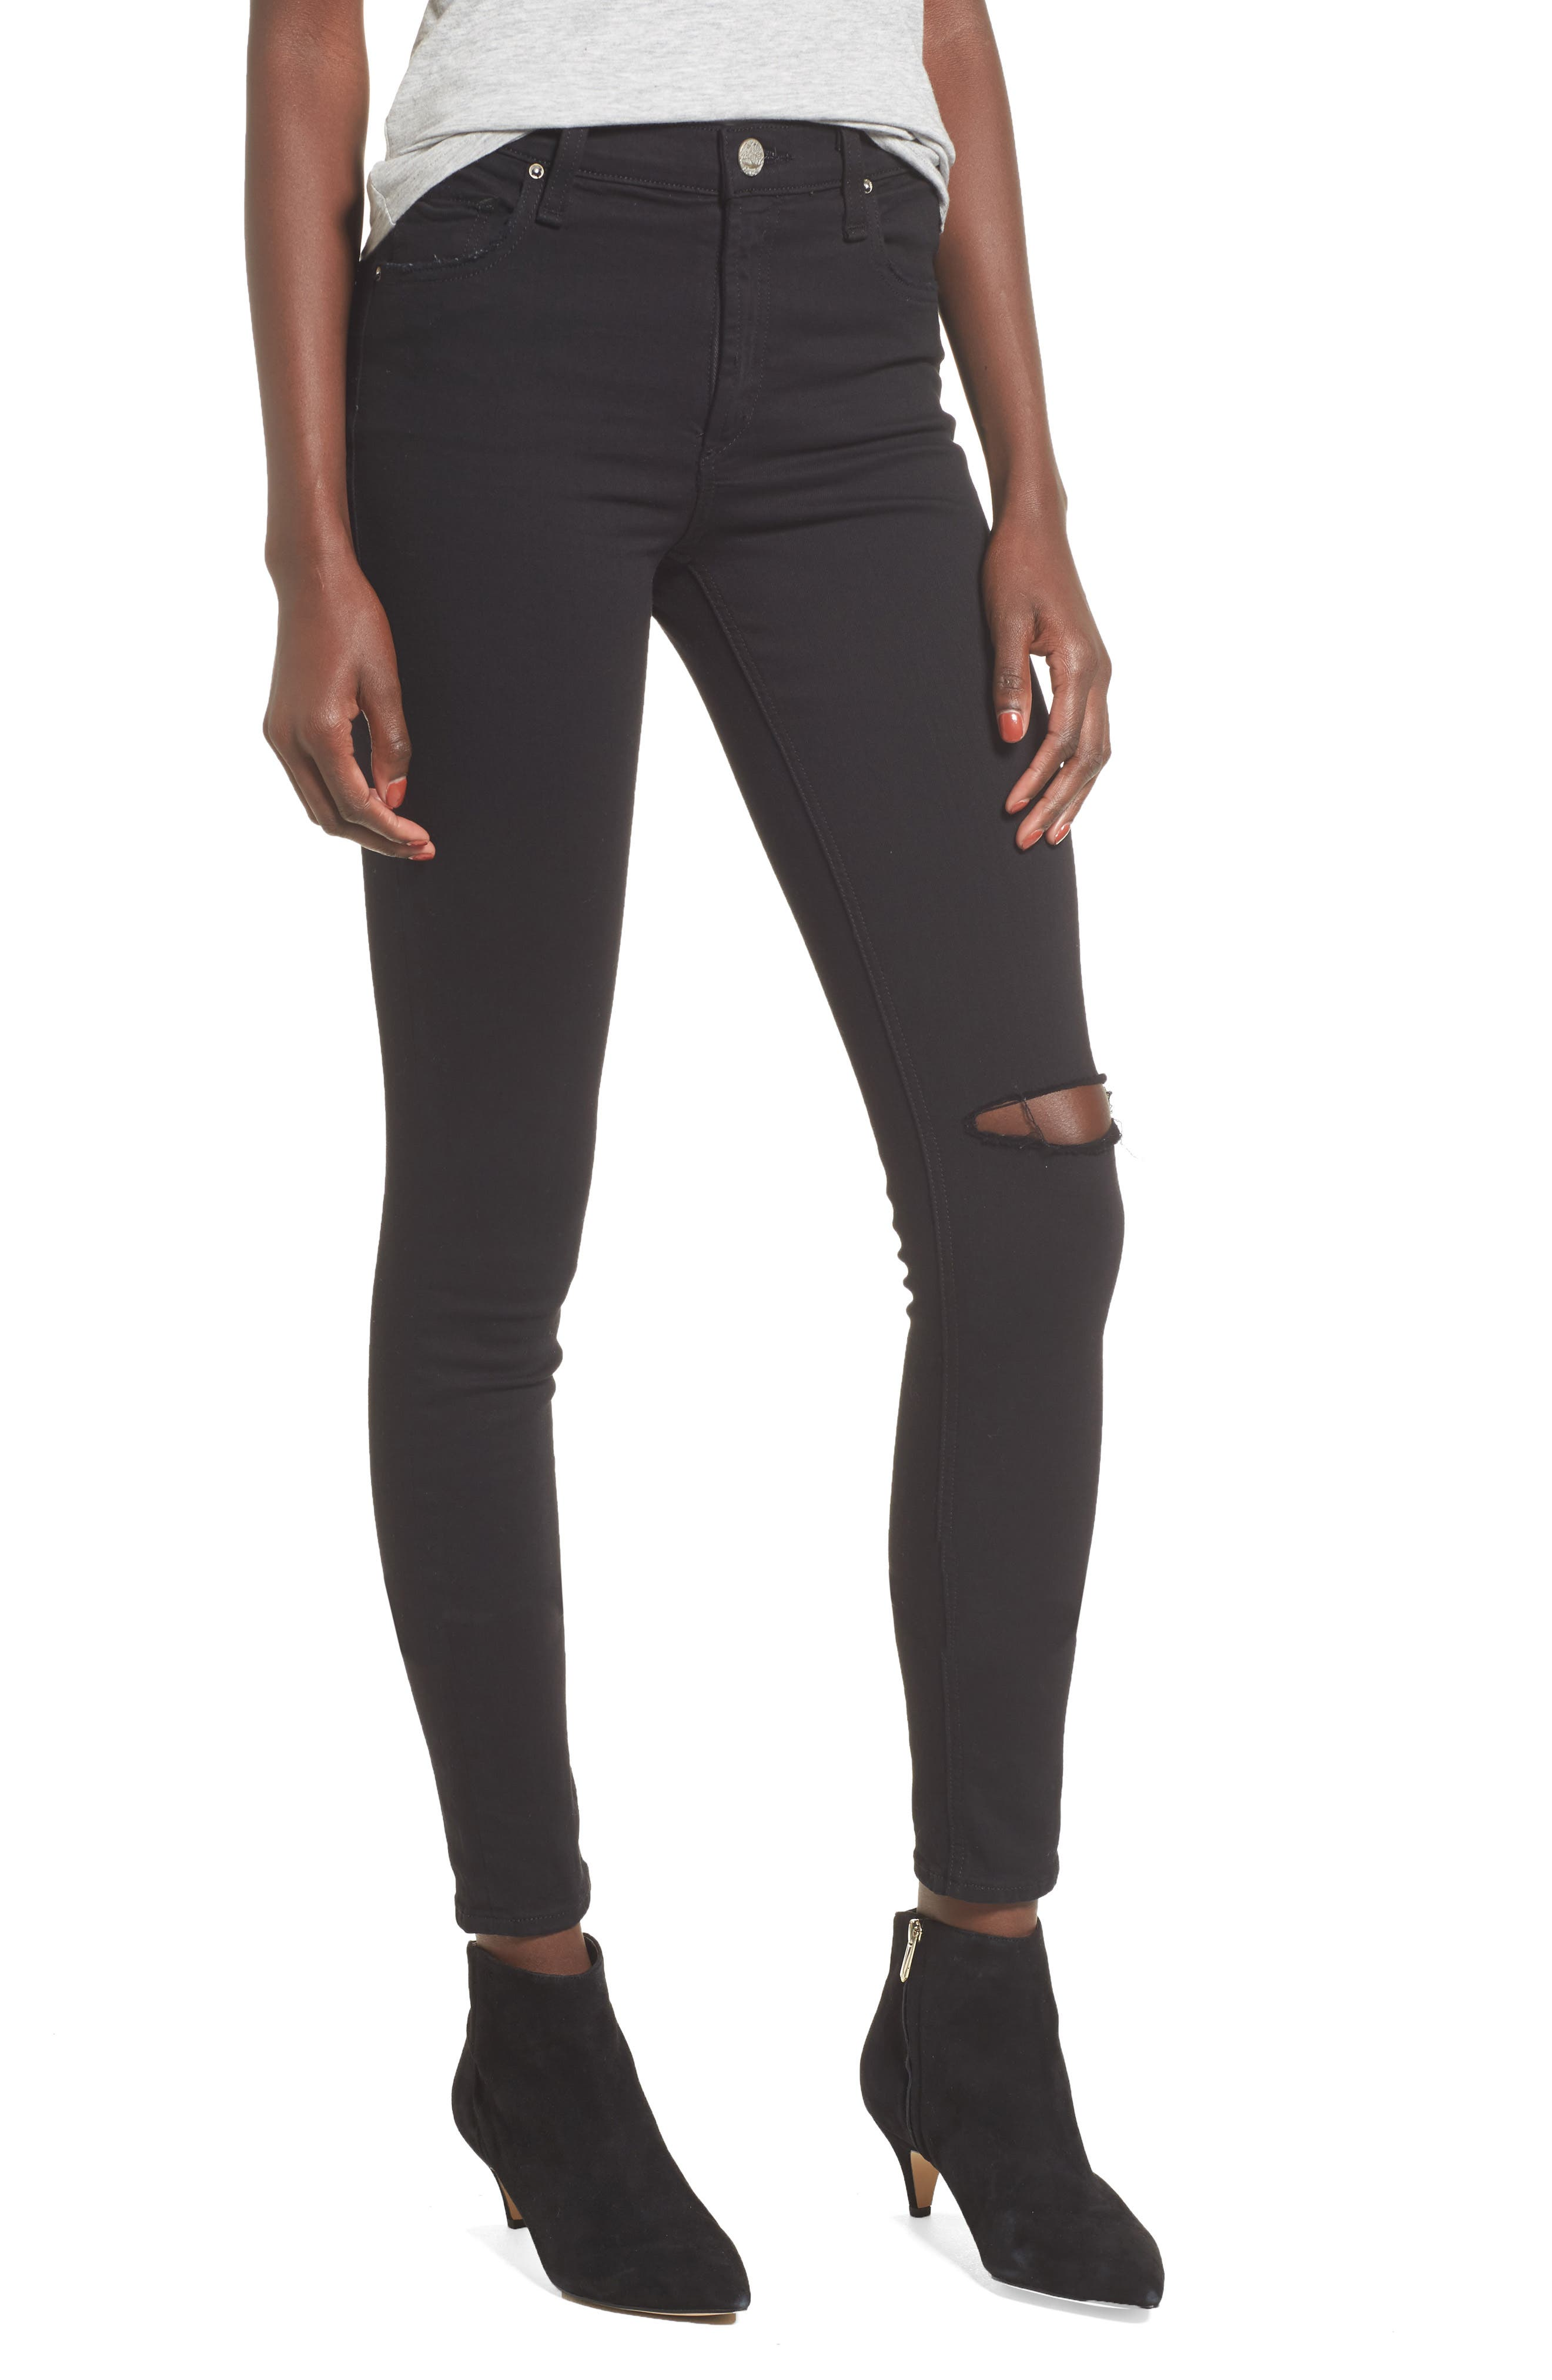 McGuire Newton High Waist Ankle Skinny Jeans (Reposado)